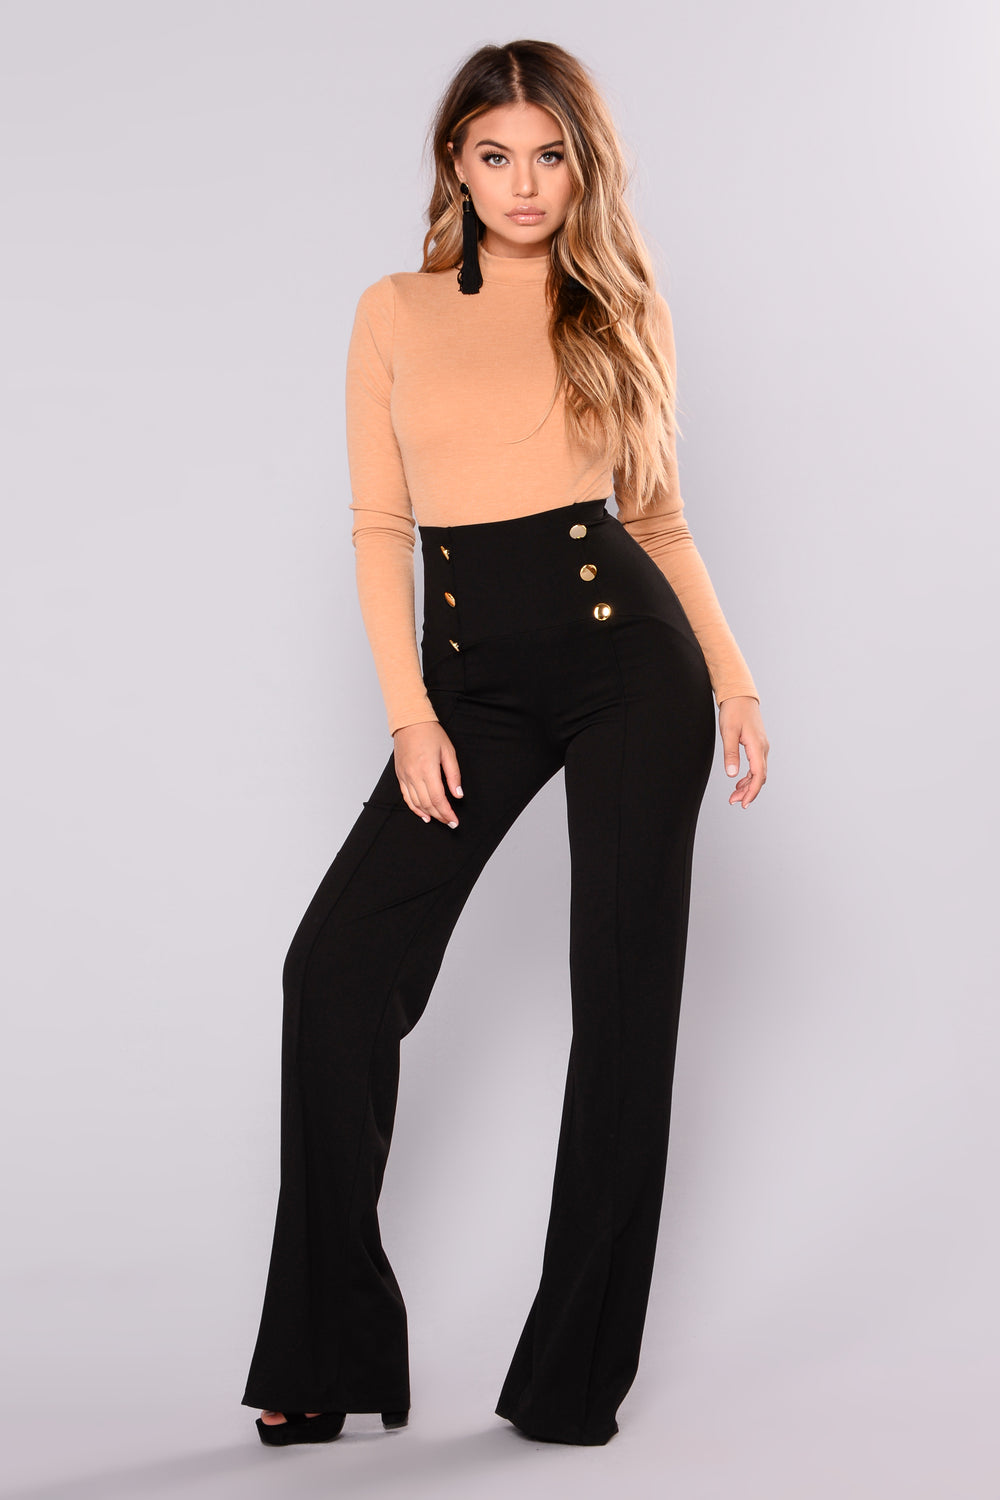 Shop our Collection of Women's Wide Leg Pants at xflavismo.ga for the Latest Designer Brands & Styles. FREE SHIPPING AVAILABLE!